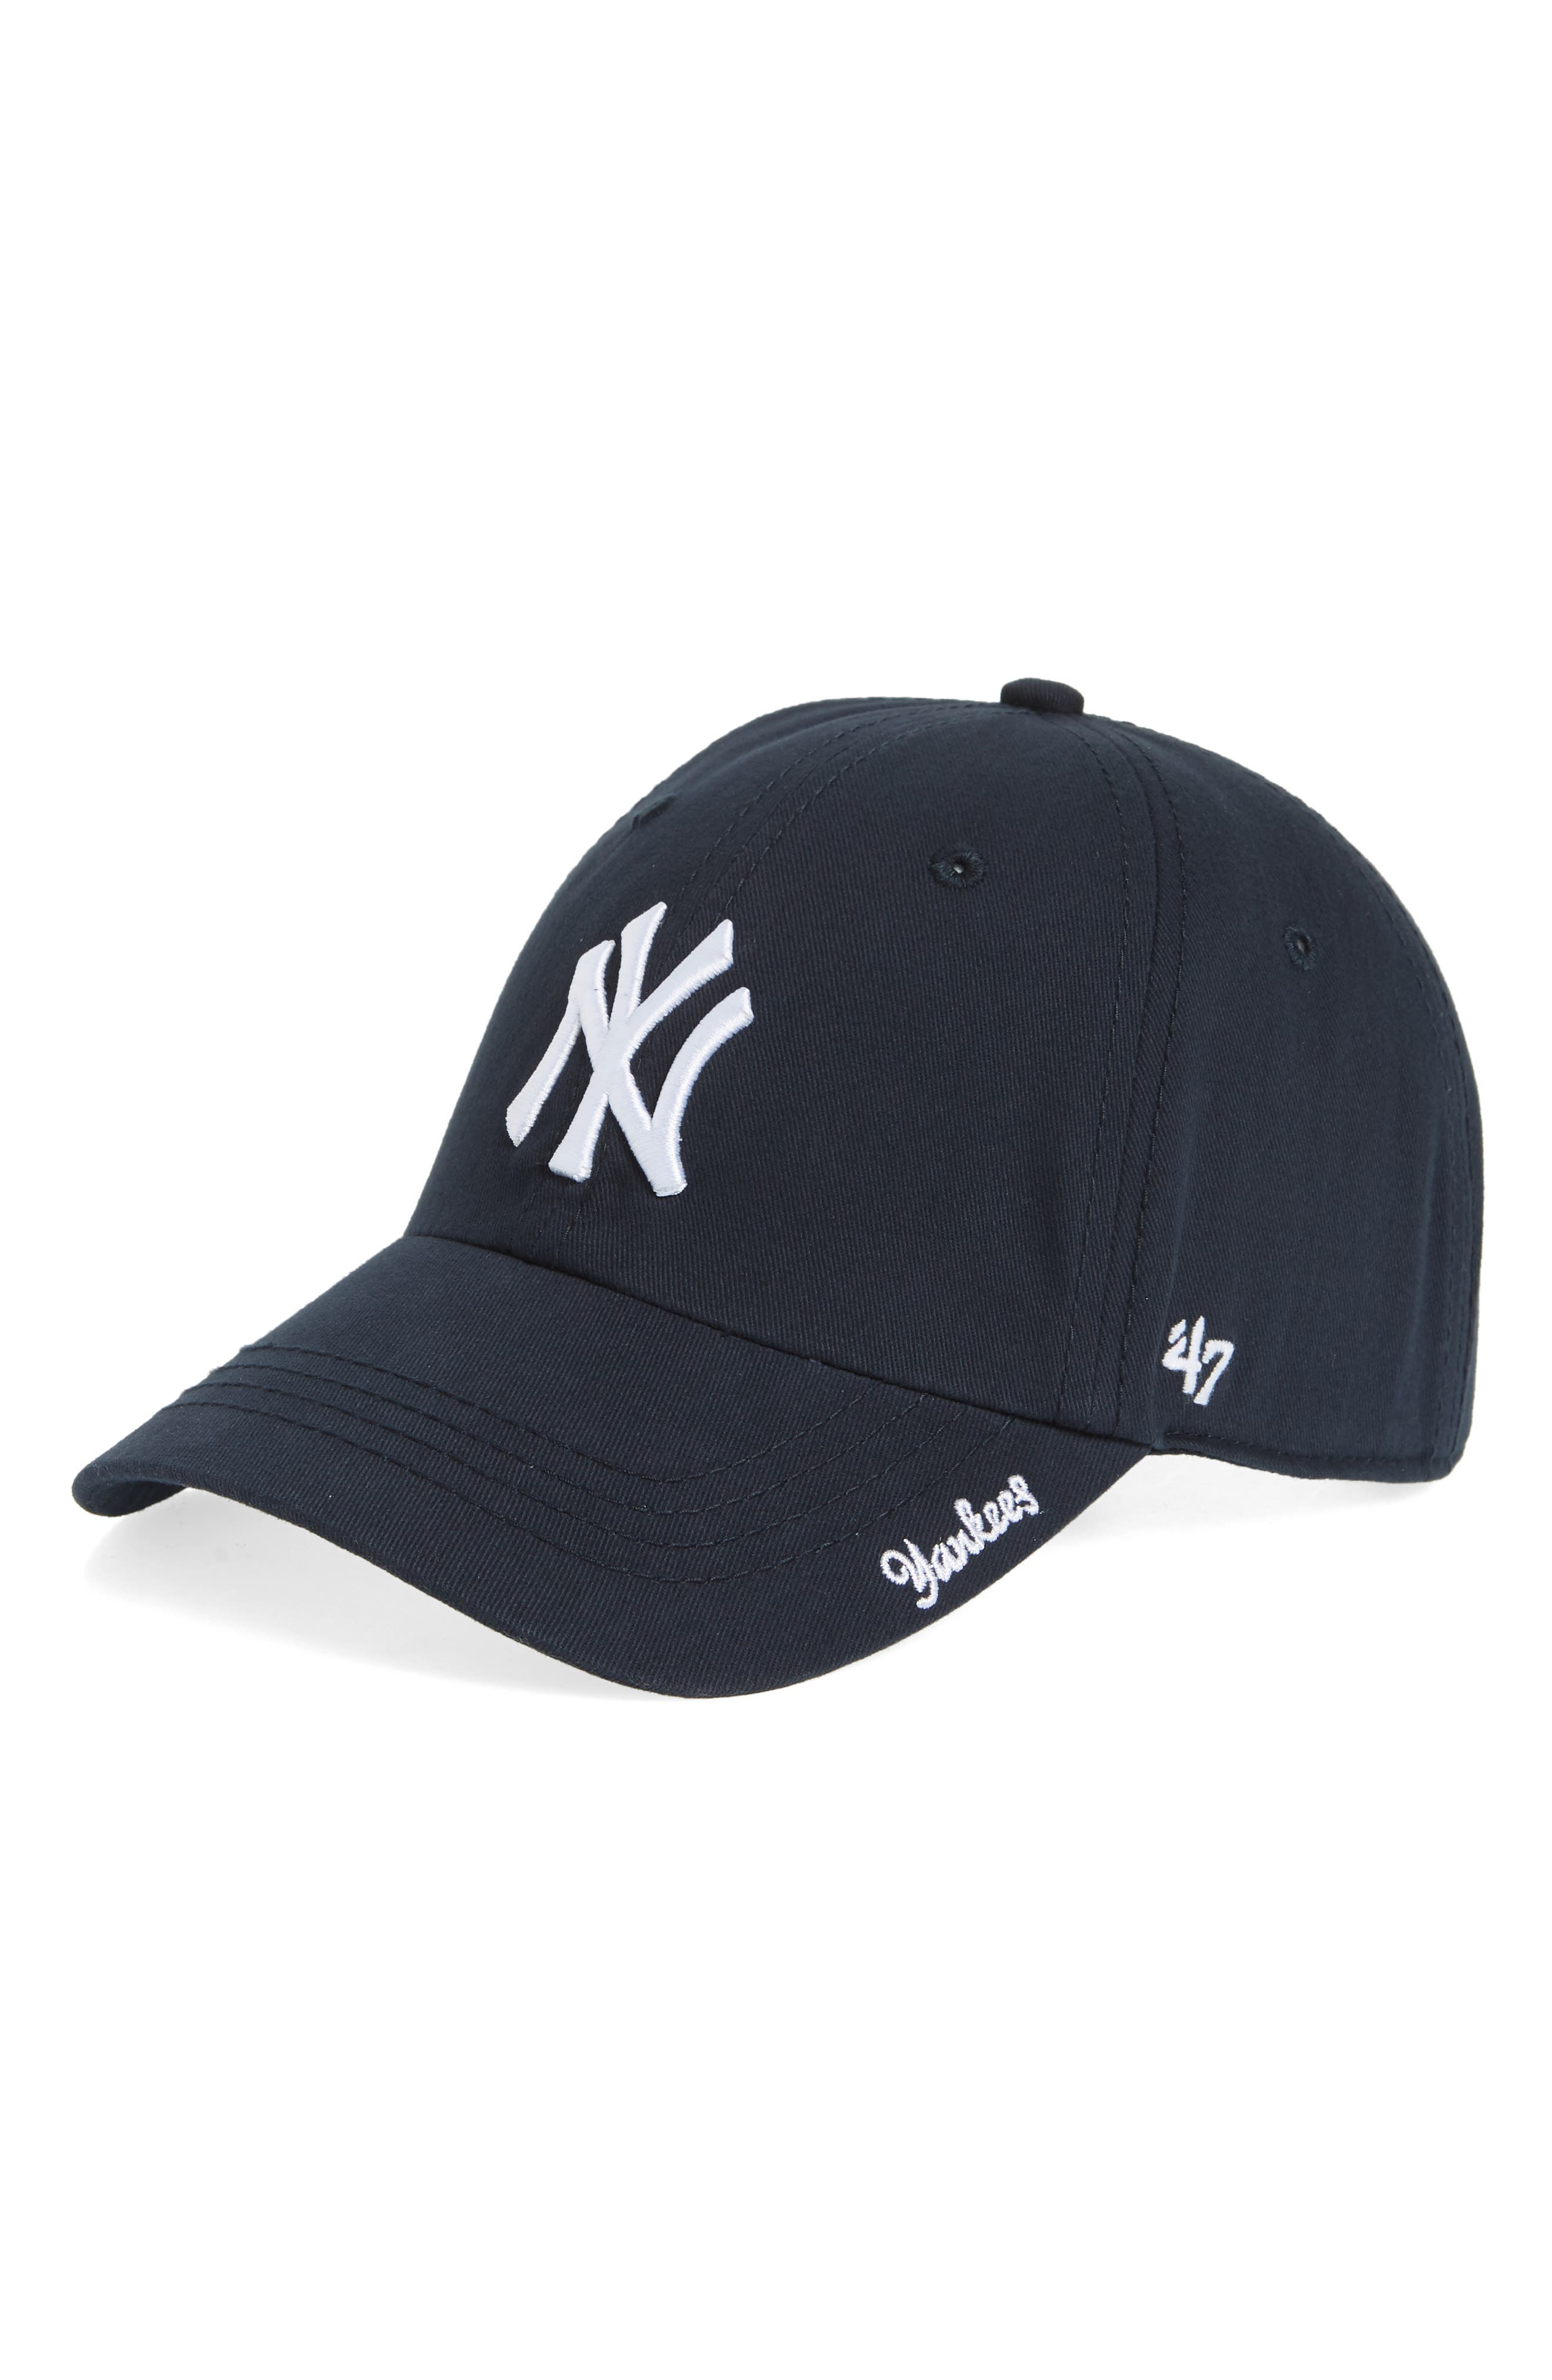 Miata Clean-Up New York Yankees Baseball Cap,                         Main,                         color, Navy